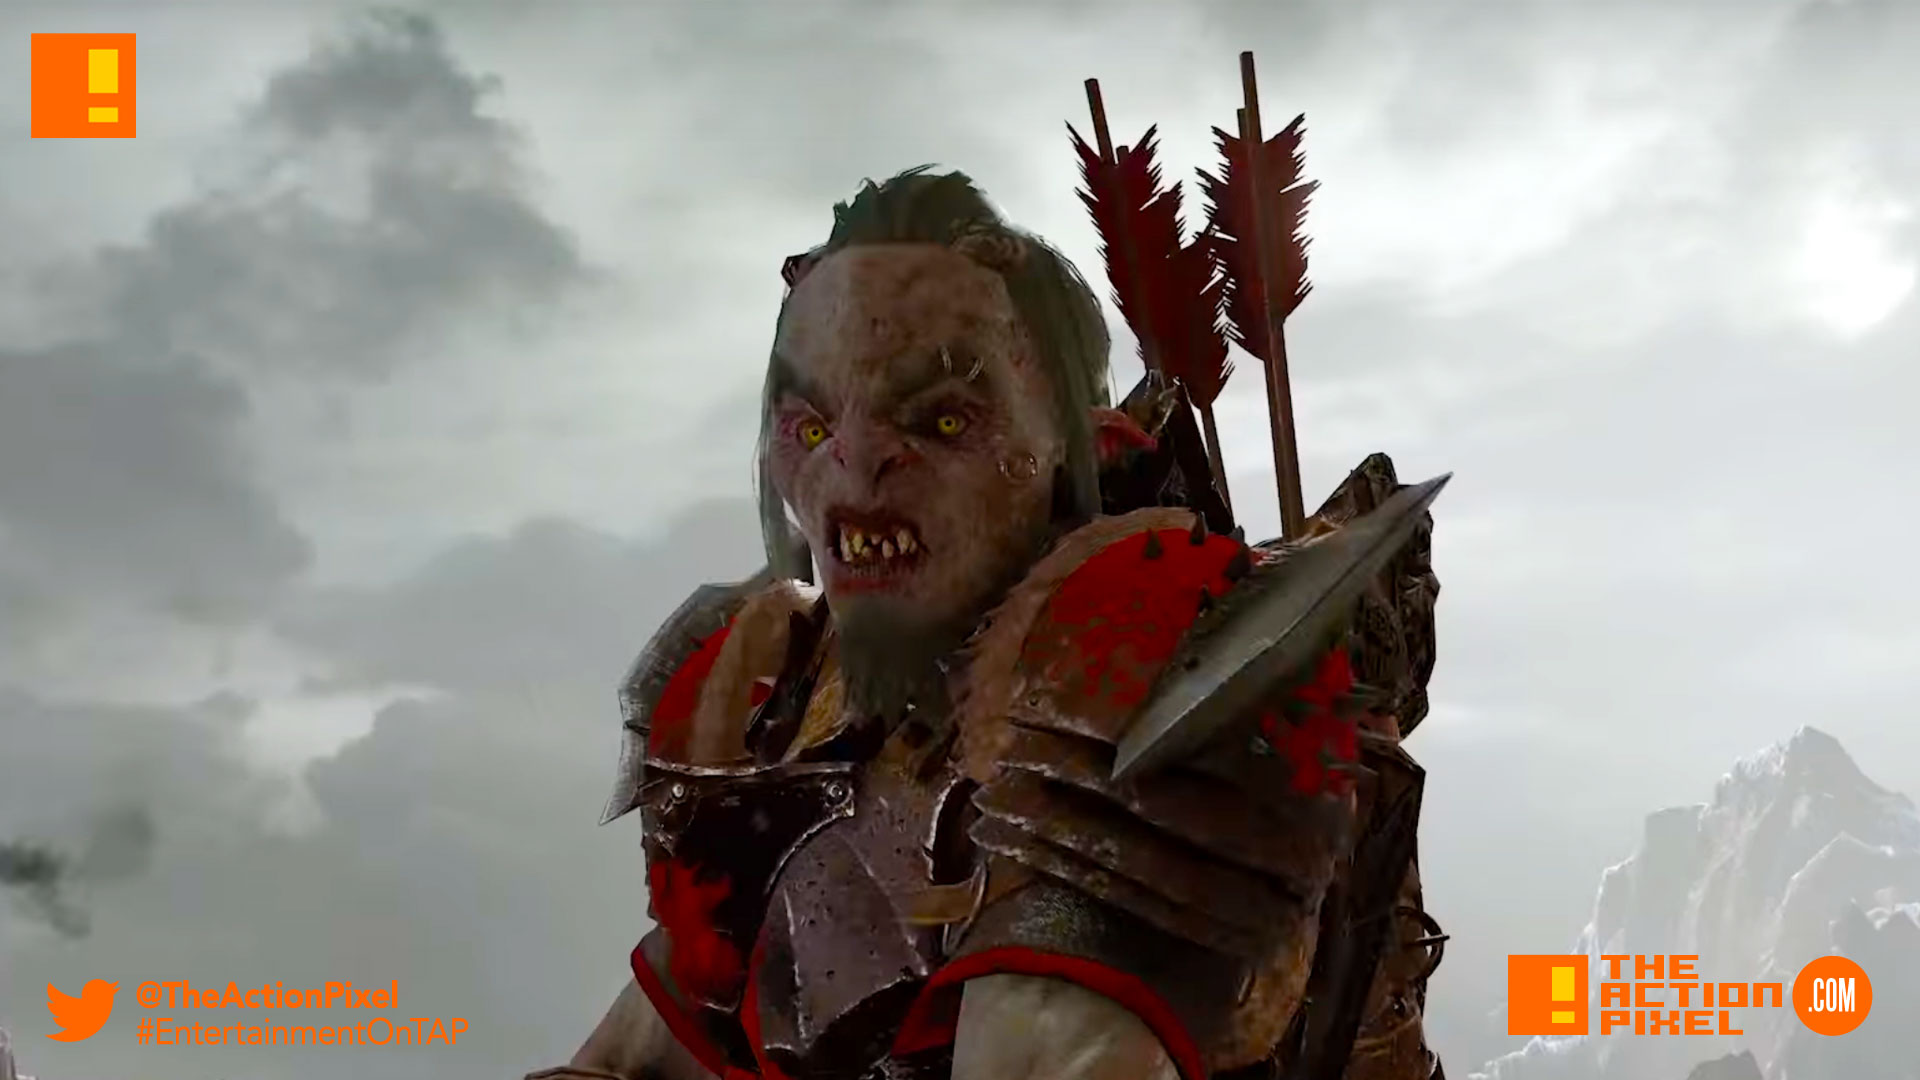 shadow of war , wb games, warner bros, Shadow of War , Kumail Nanjiani , The Agonizer ,Trailer, middle earth, middle-earth,